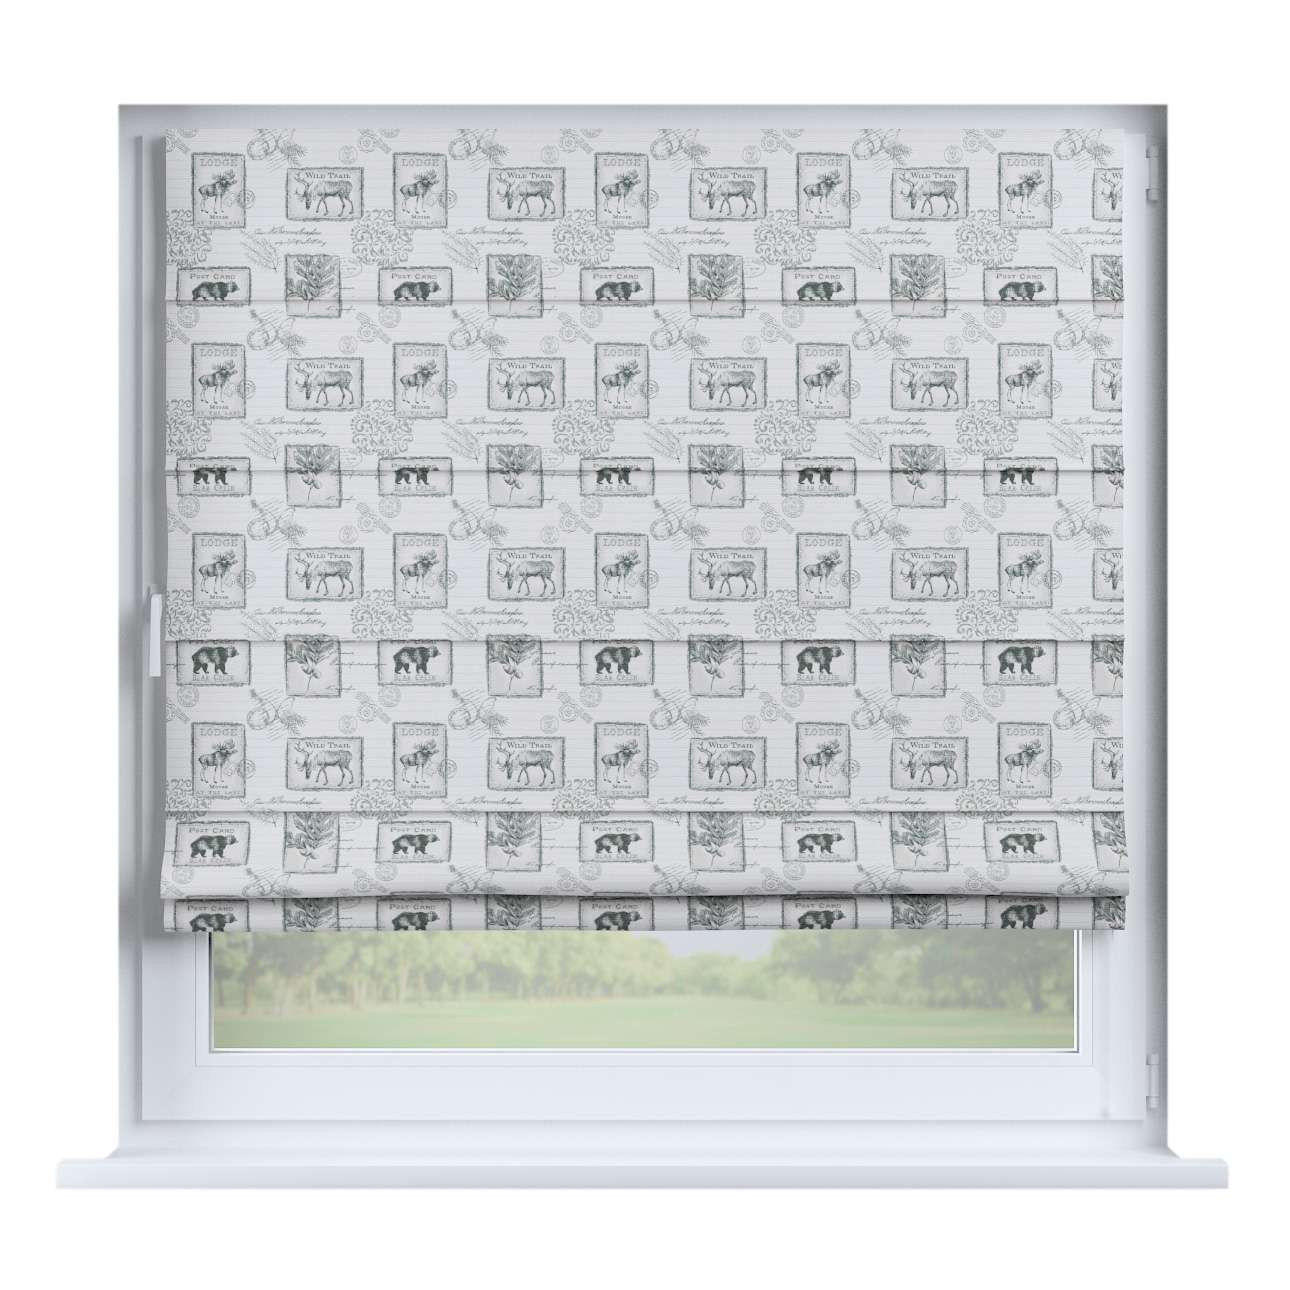 Capri roman blind 80 x 170 cm (31.5 x 67 inch) in collection Nordic, fabric: 630-18